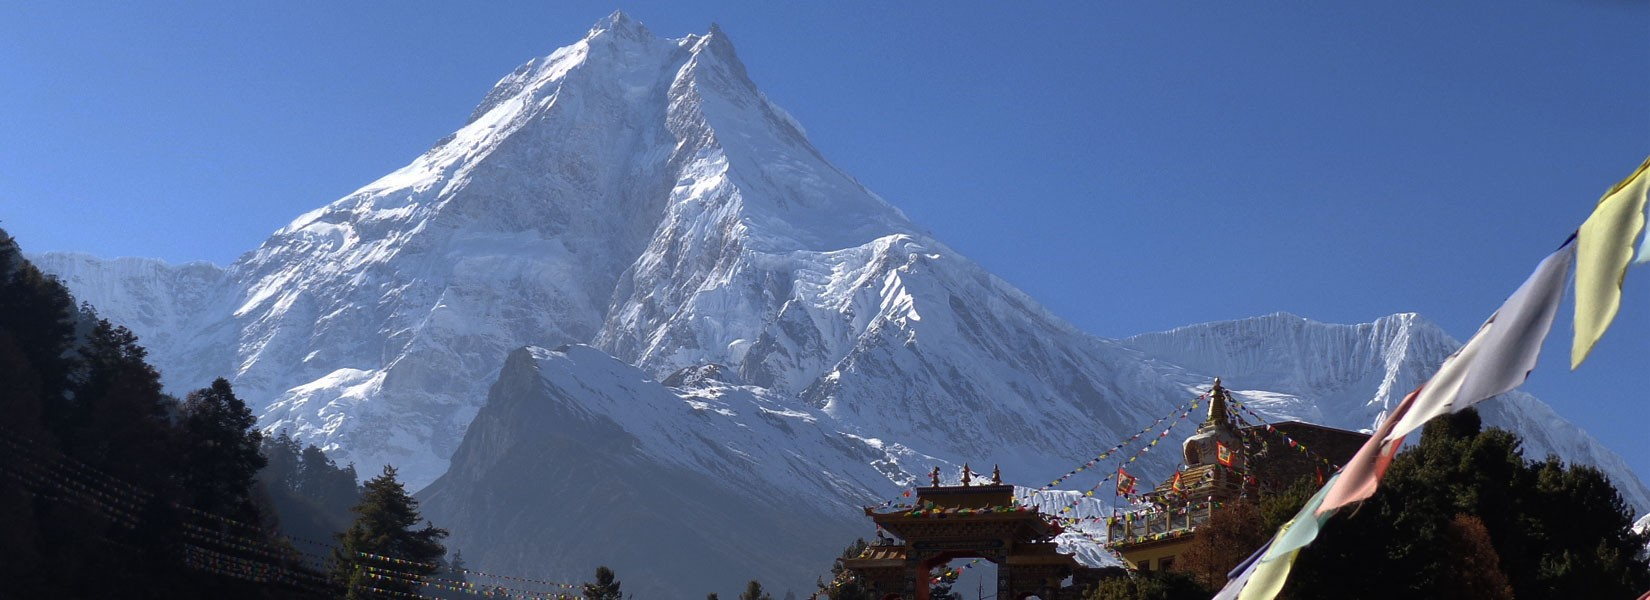 Mt. Manaslu (8163 M) as seen from Lho village